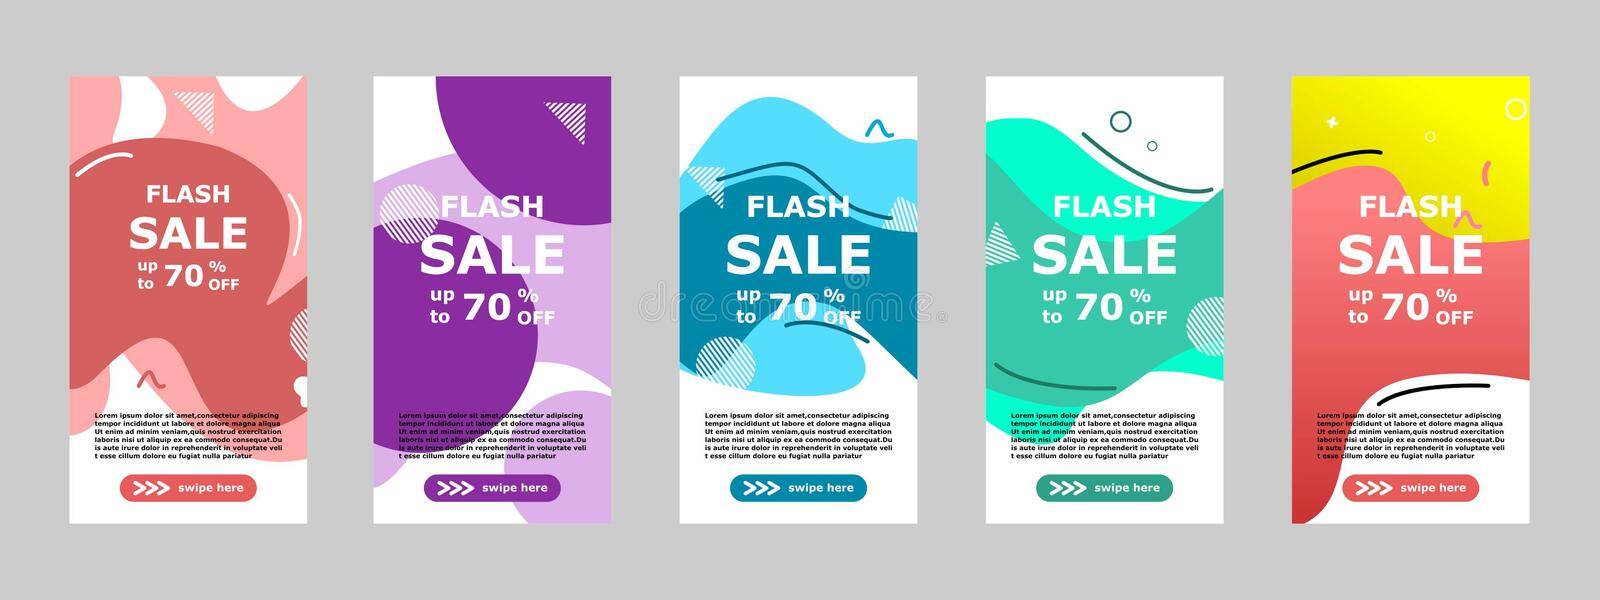 Flash sale banner mobile app and instagram stock photography